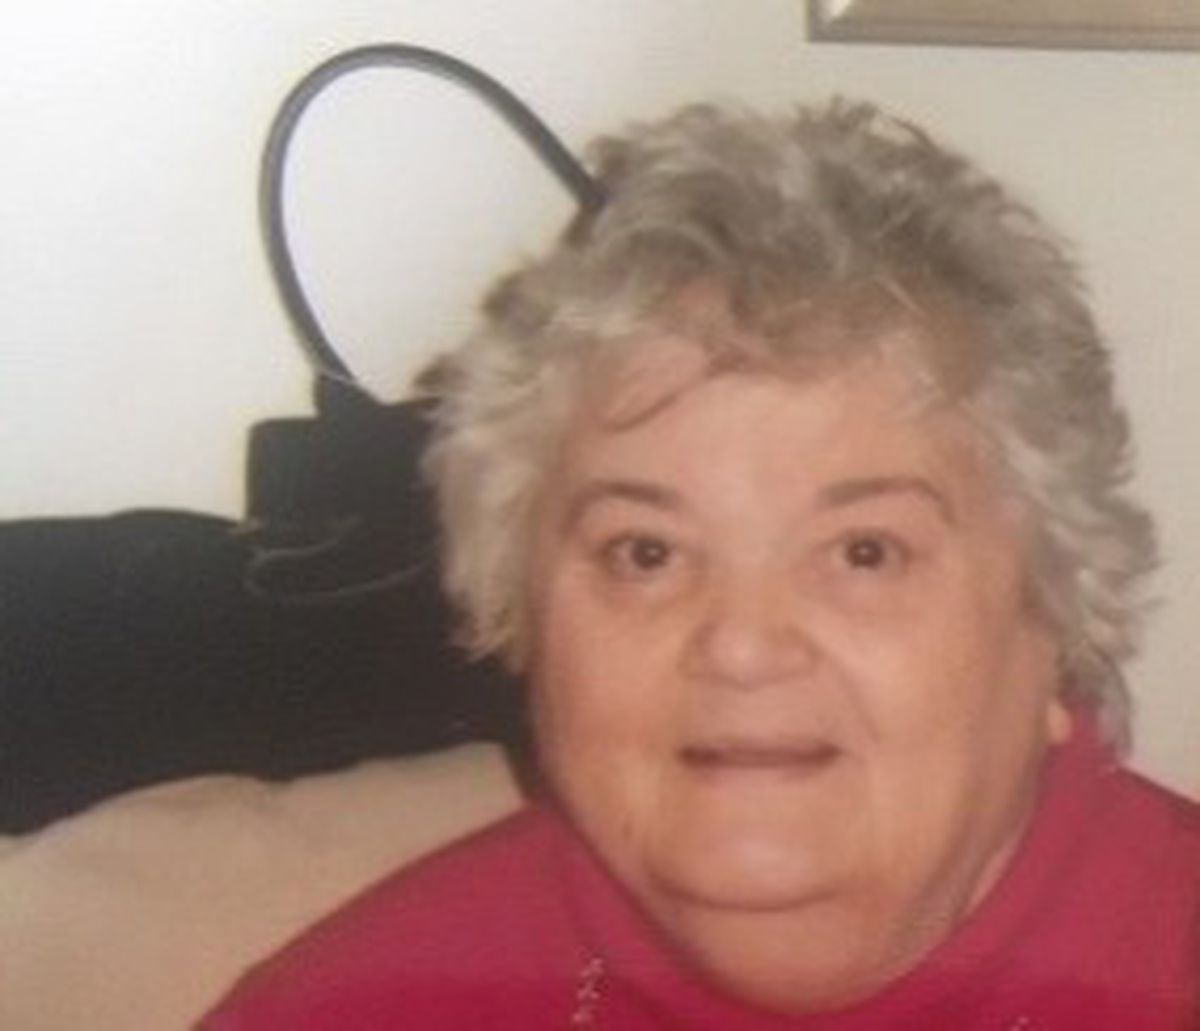 Dorothy Dunn was aged 86 when she died